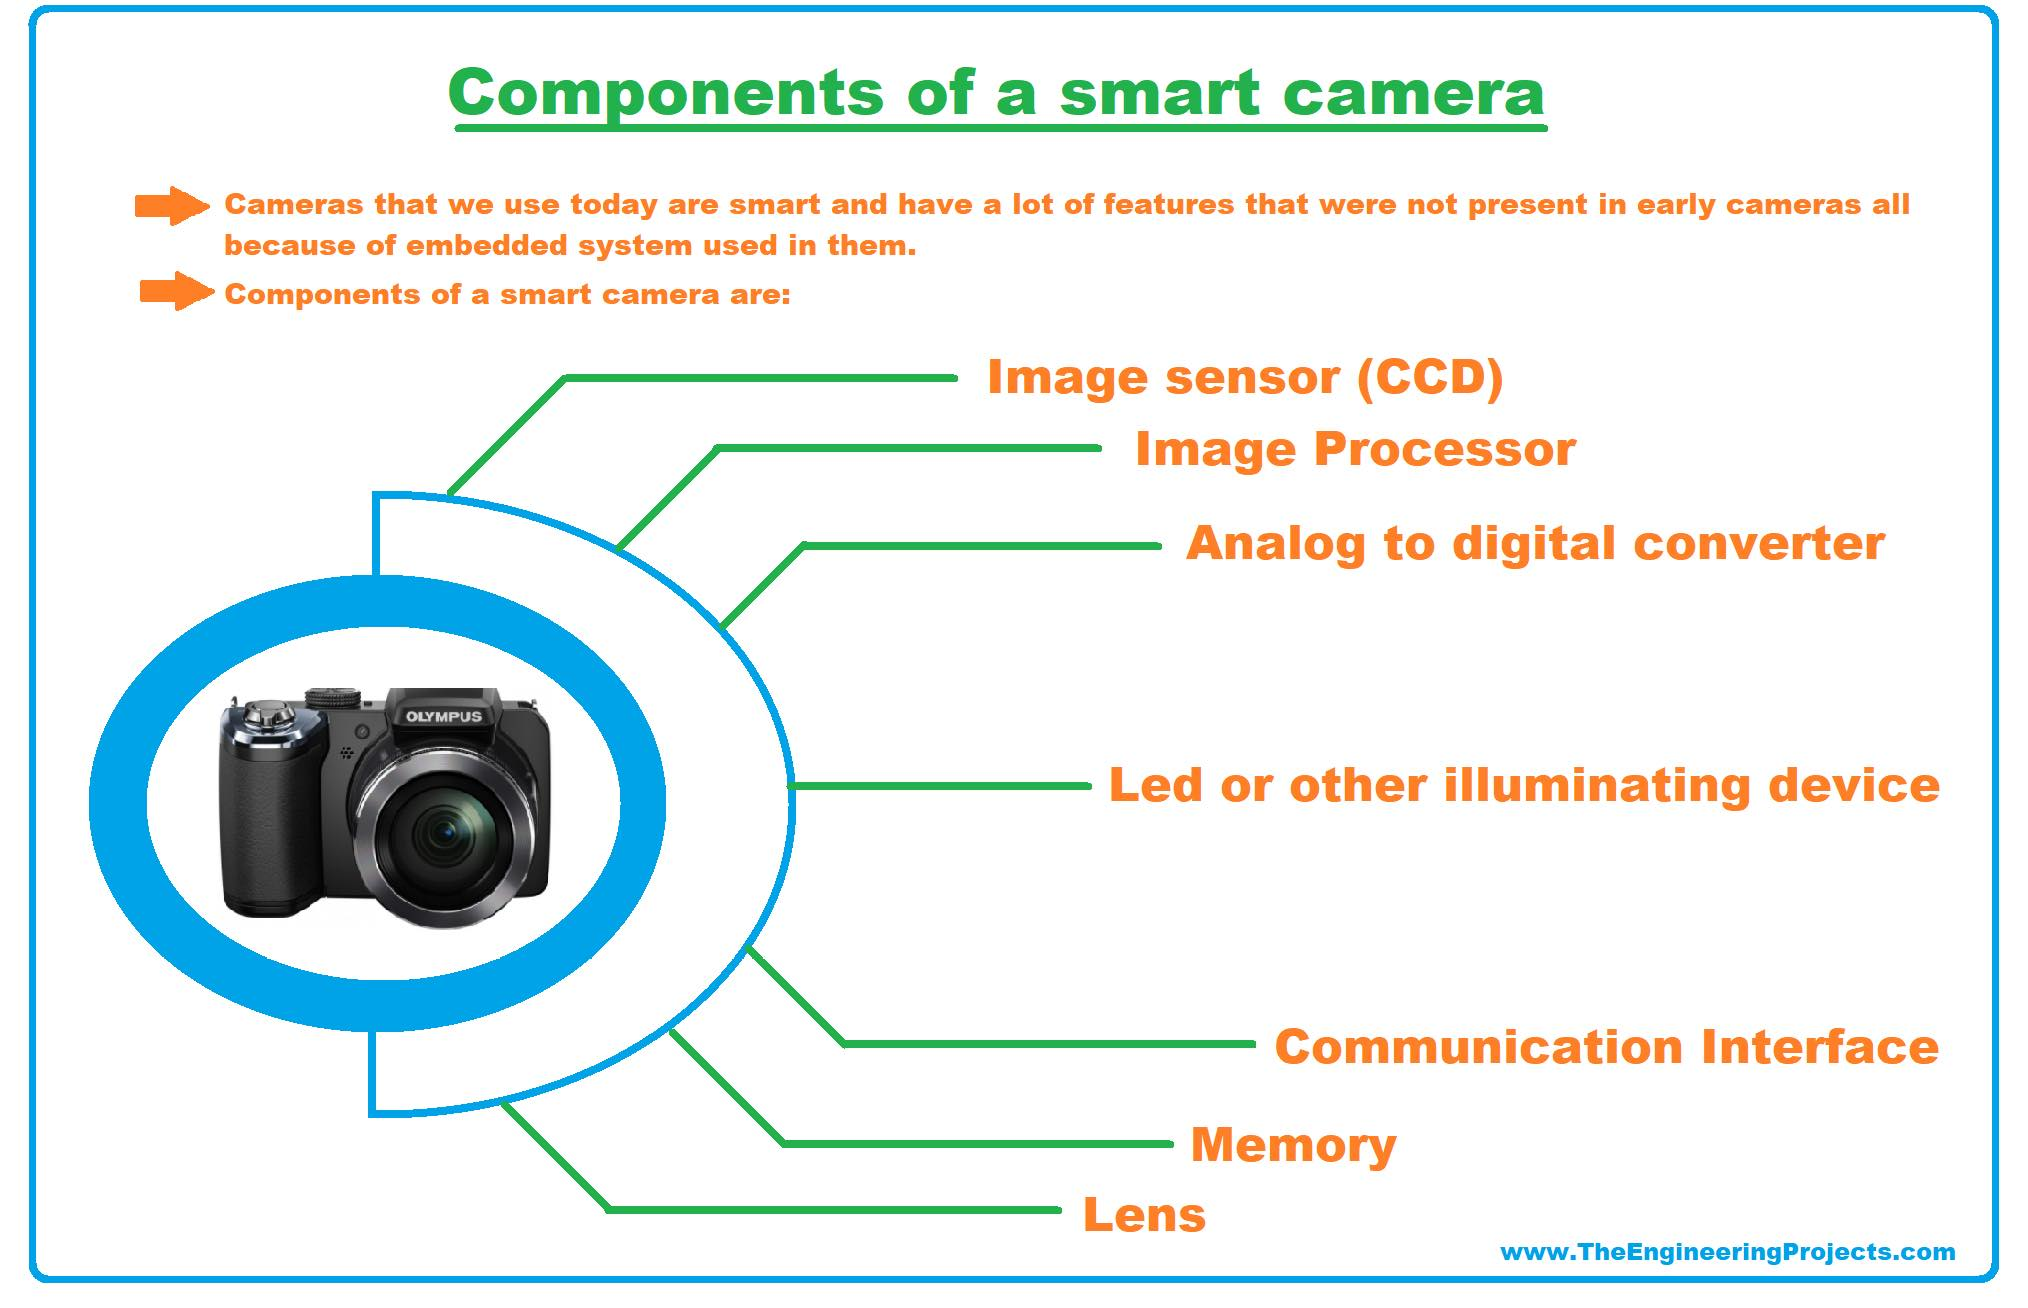 examples of embedded system, embedded systems examples, embedded system real life examples, real life embedded systems examples, embedded product, camera embedded components